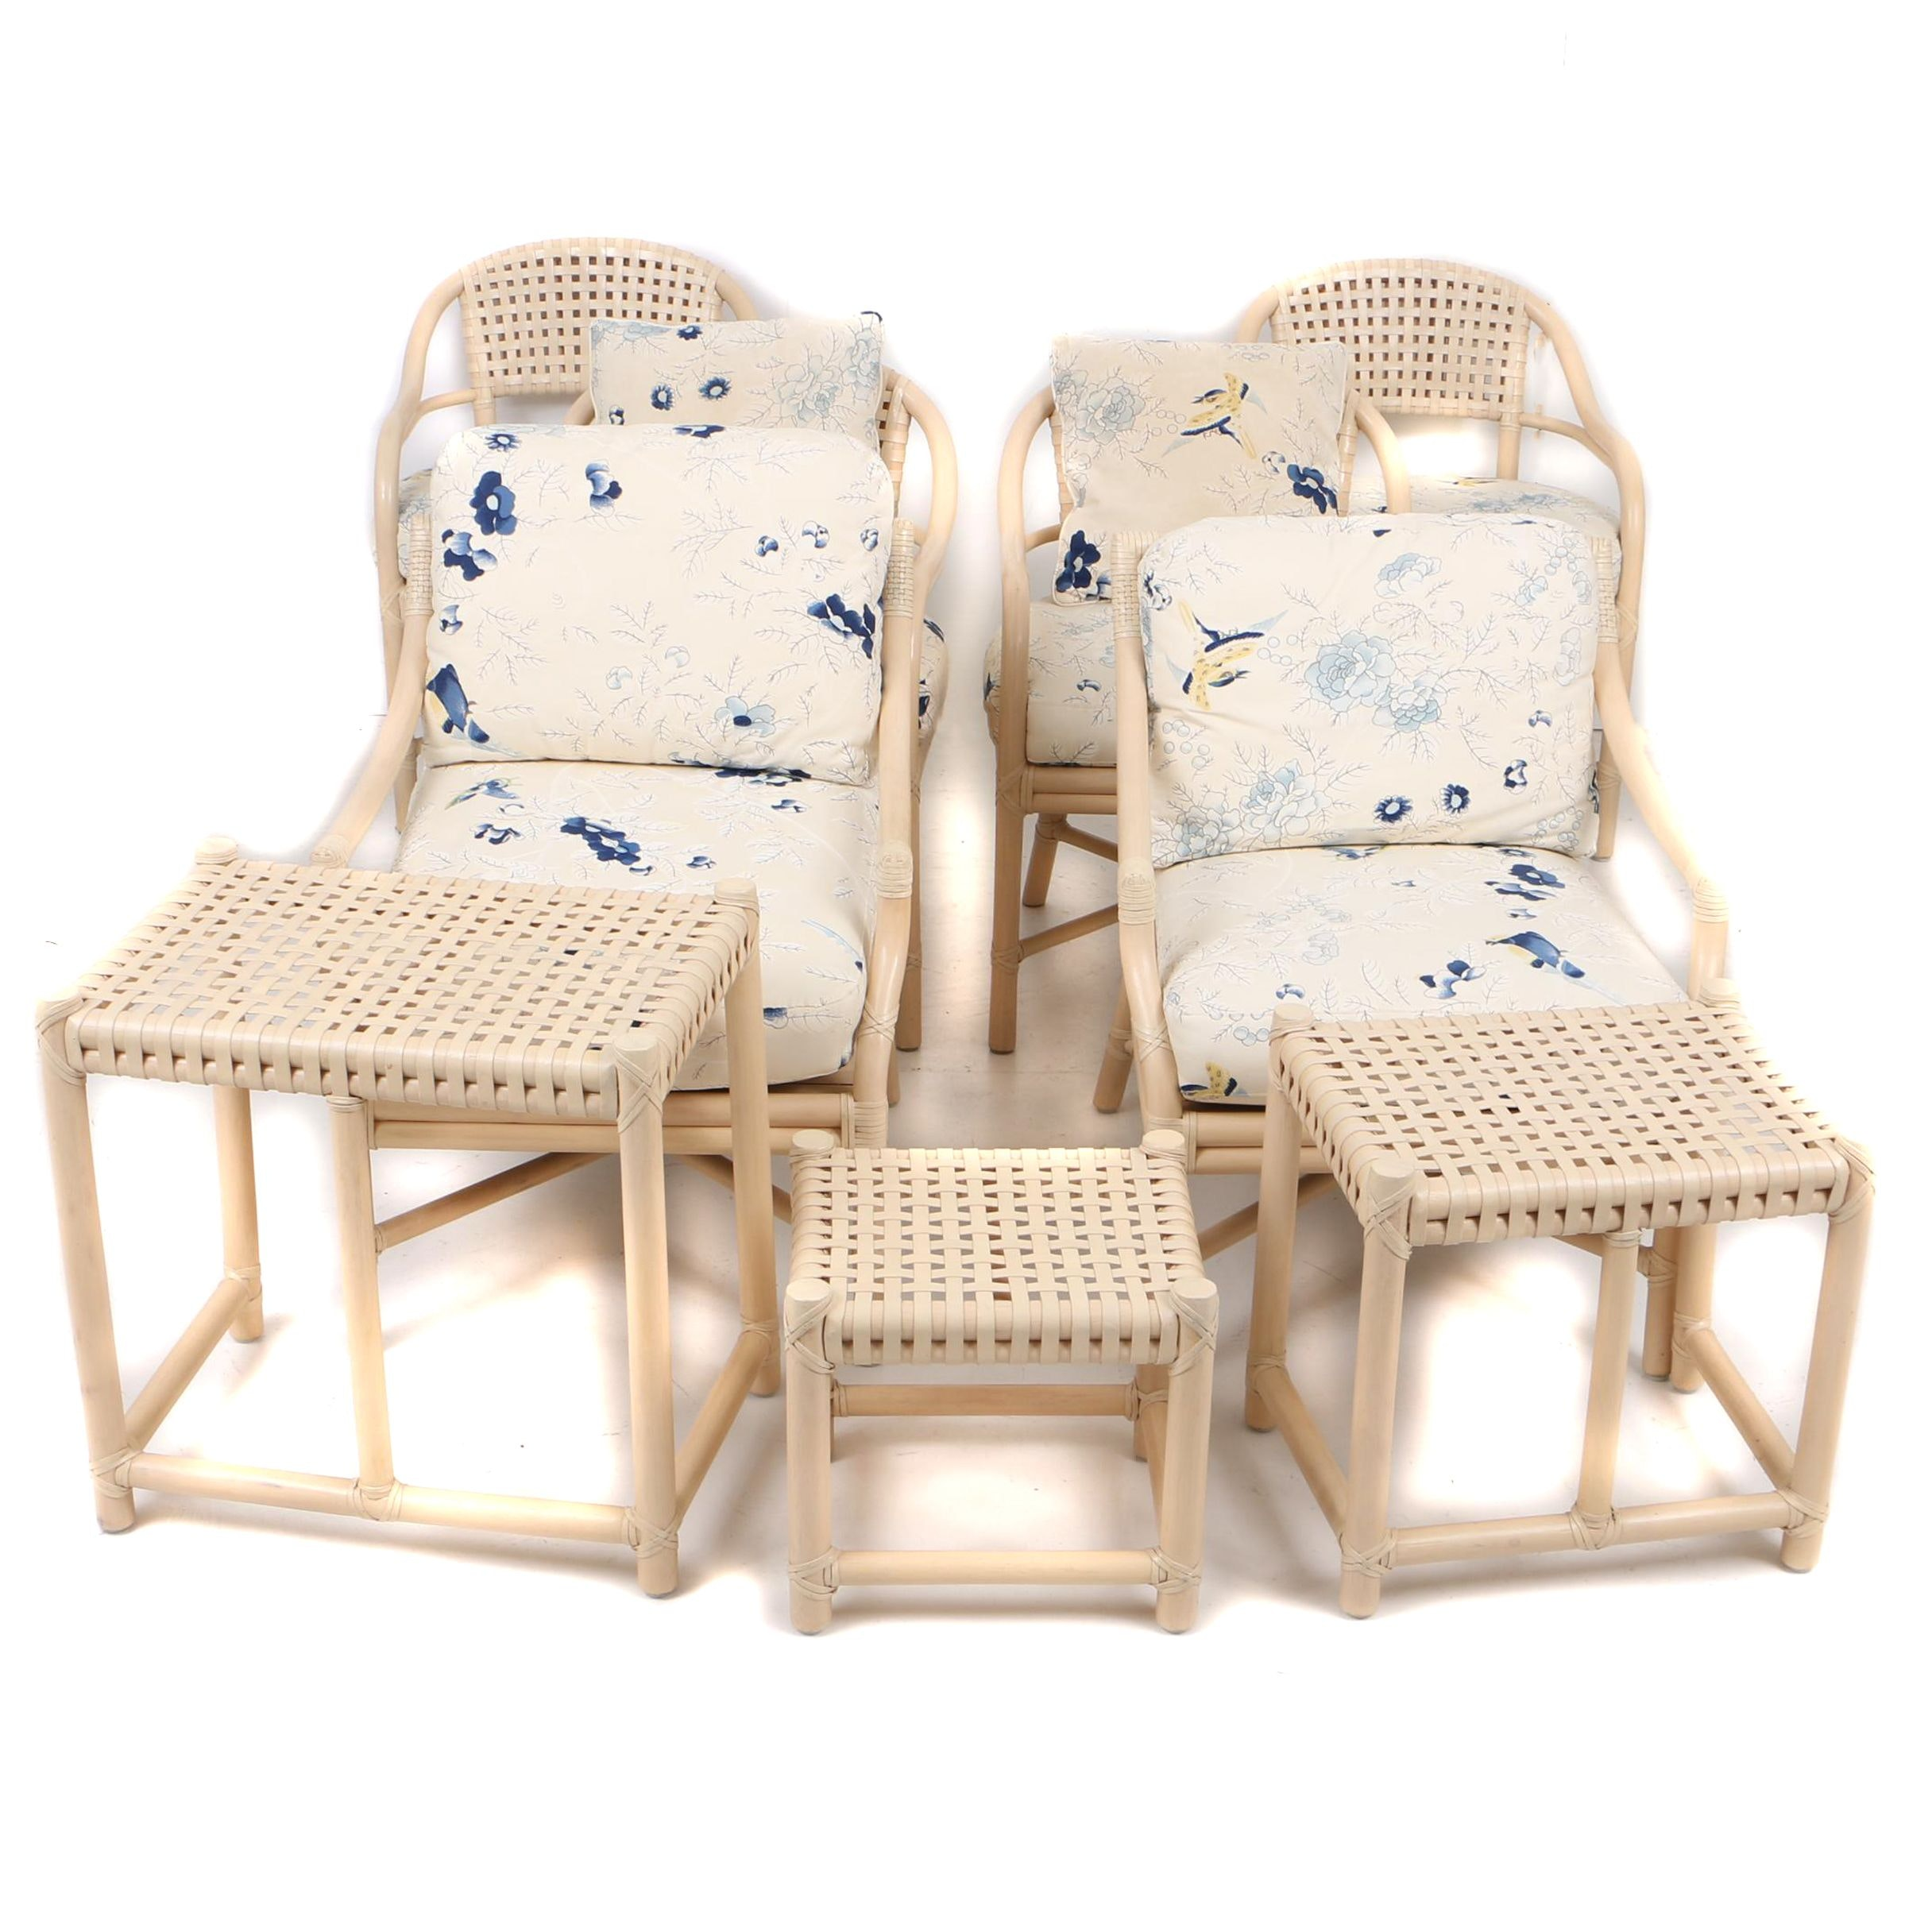 McGuire Of San Francisco Rattan Style Chairs And Table Set In Nine Pieces  ...